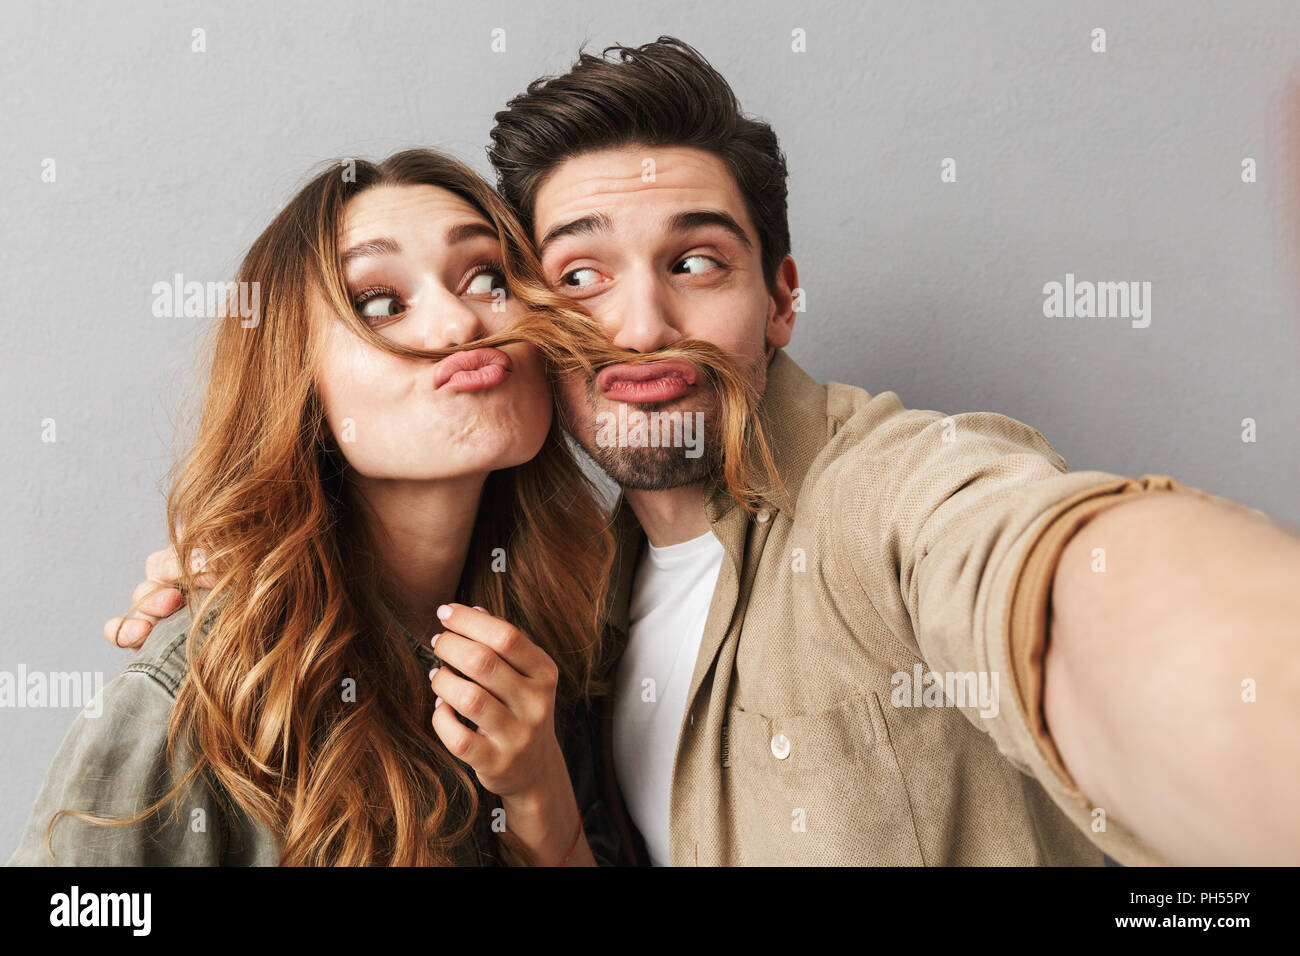 Portrait of a cheerful young couple hugging while taking a selfie and grimacing isolated over gray background - Stock Image